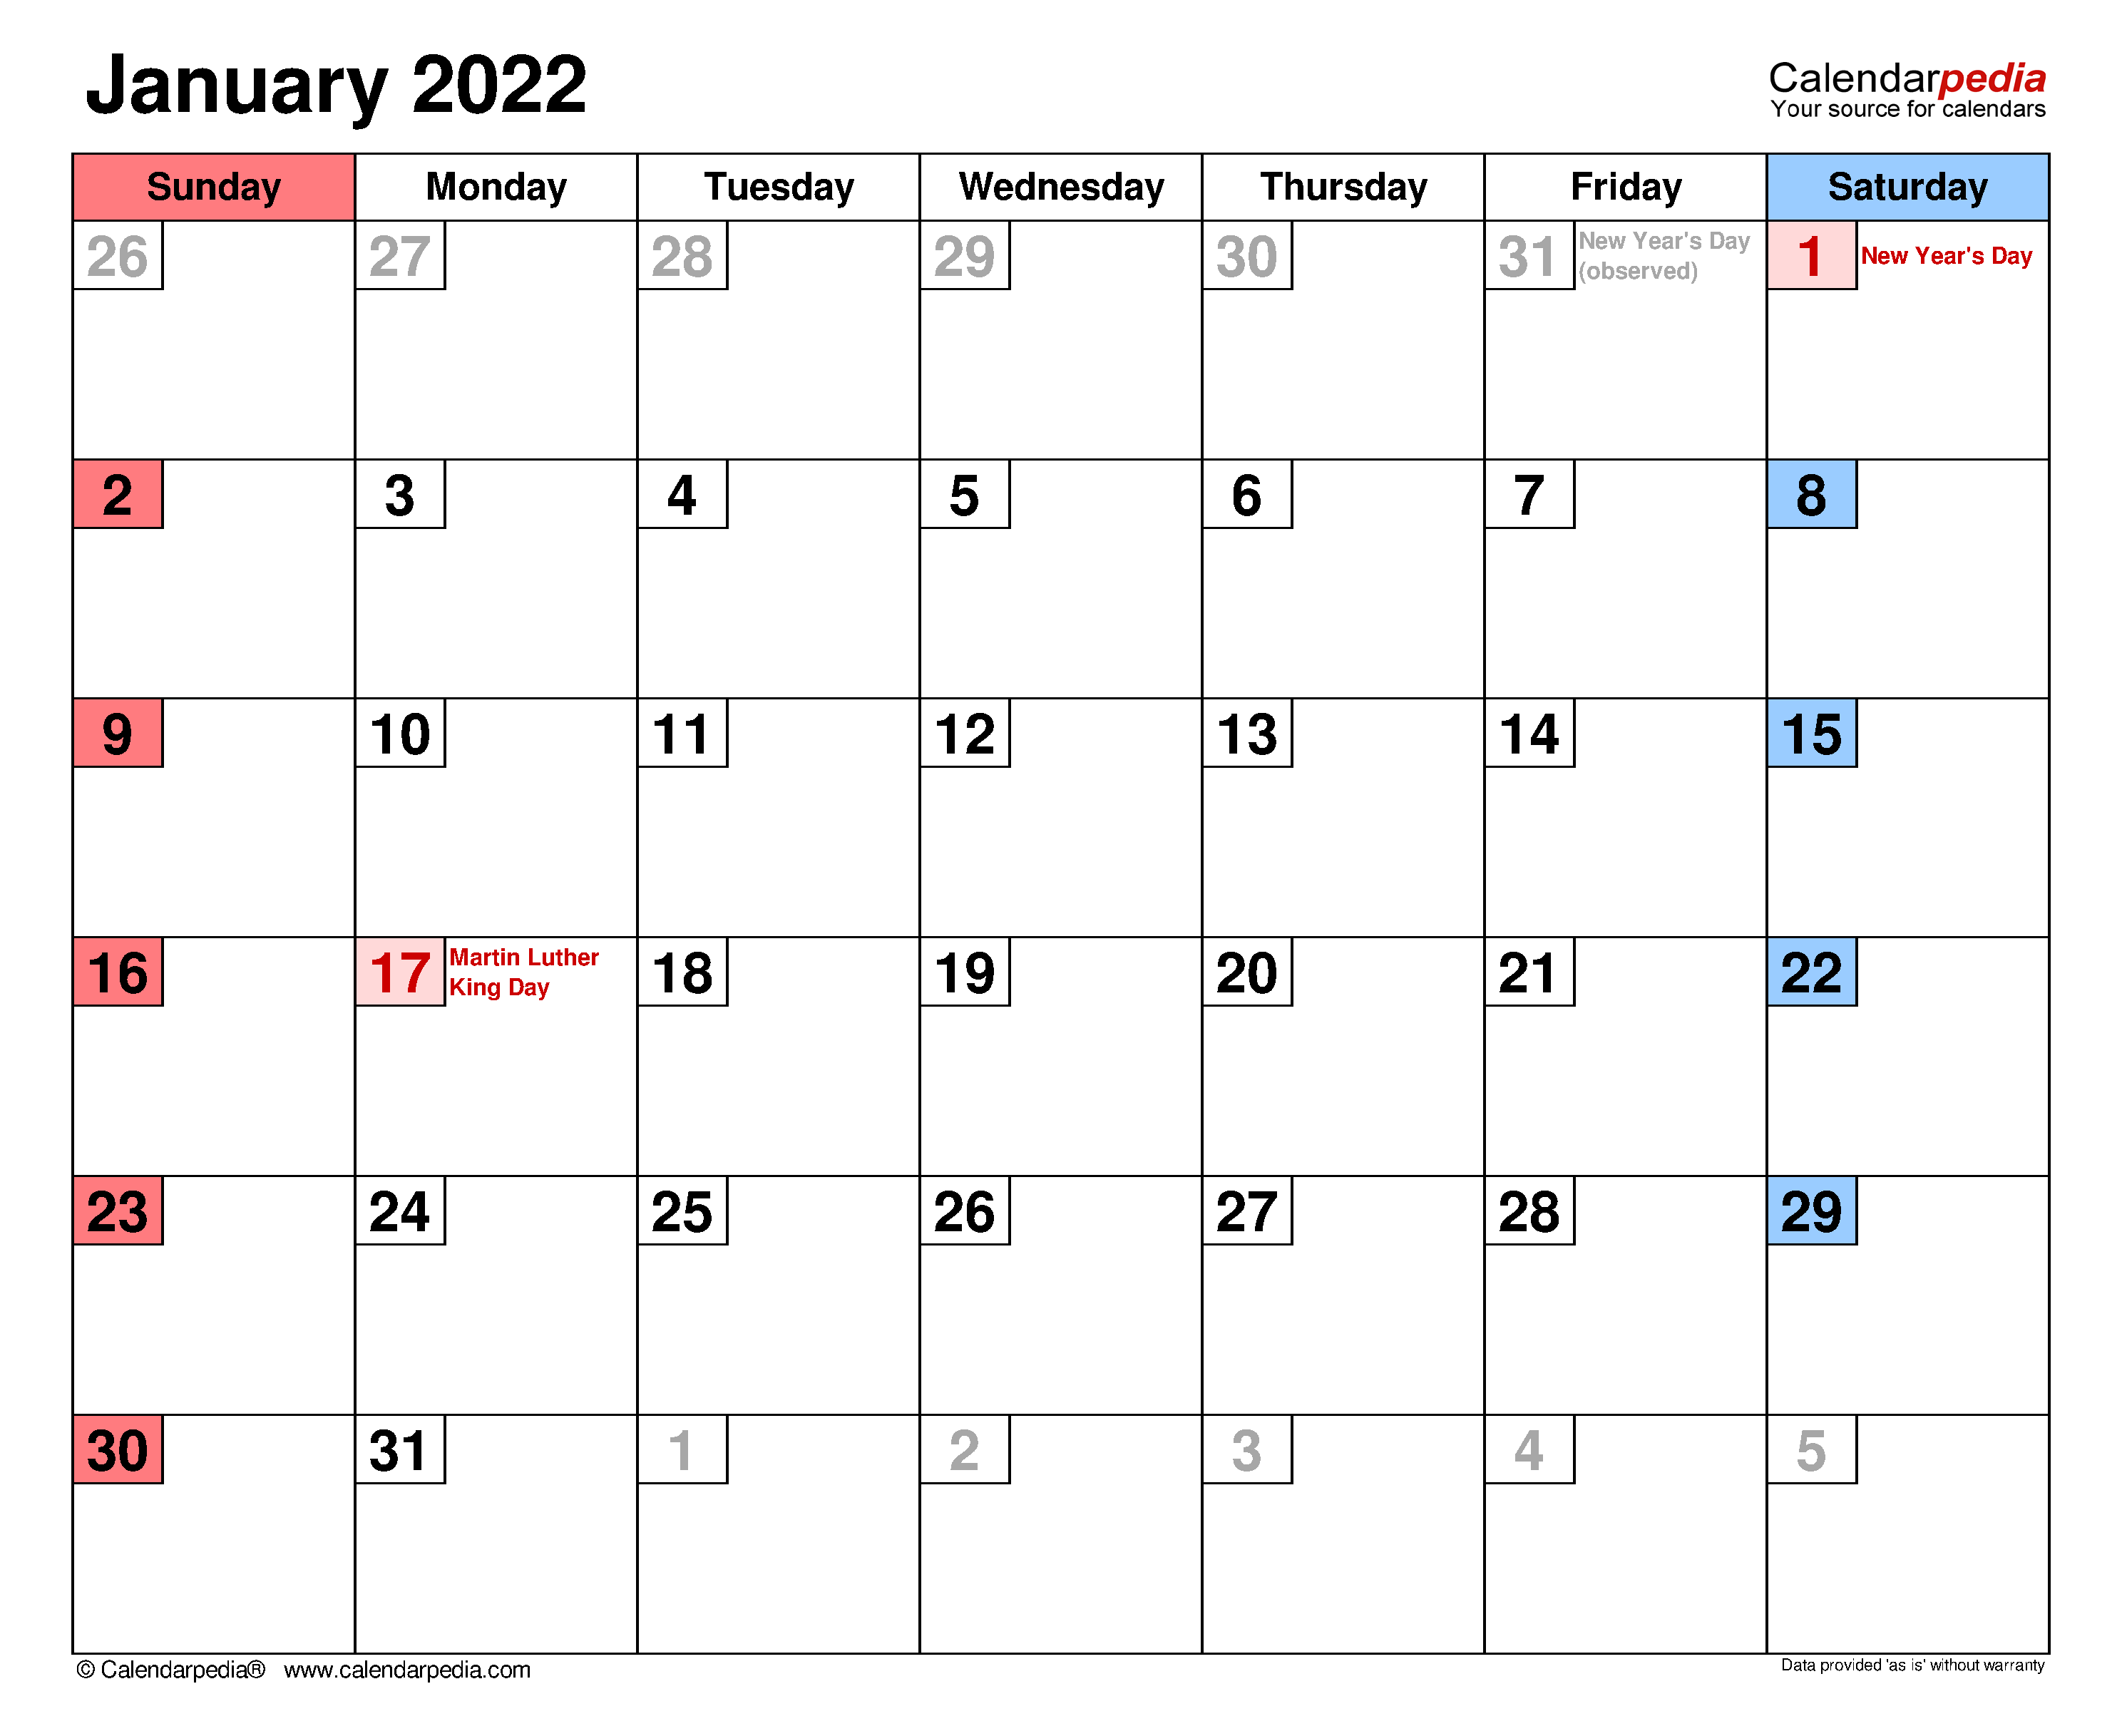 January 2022 Calendar | Templates For Word, Excel And Pdf Throughout January 2022 Calendar Template